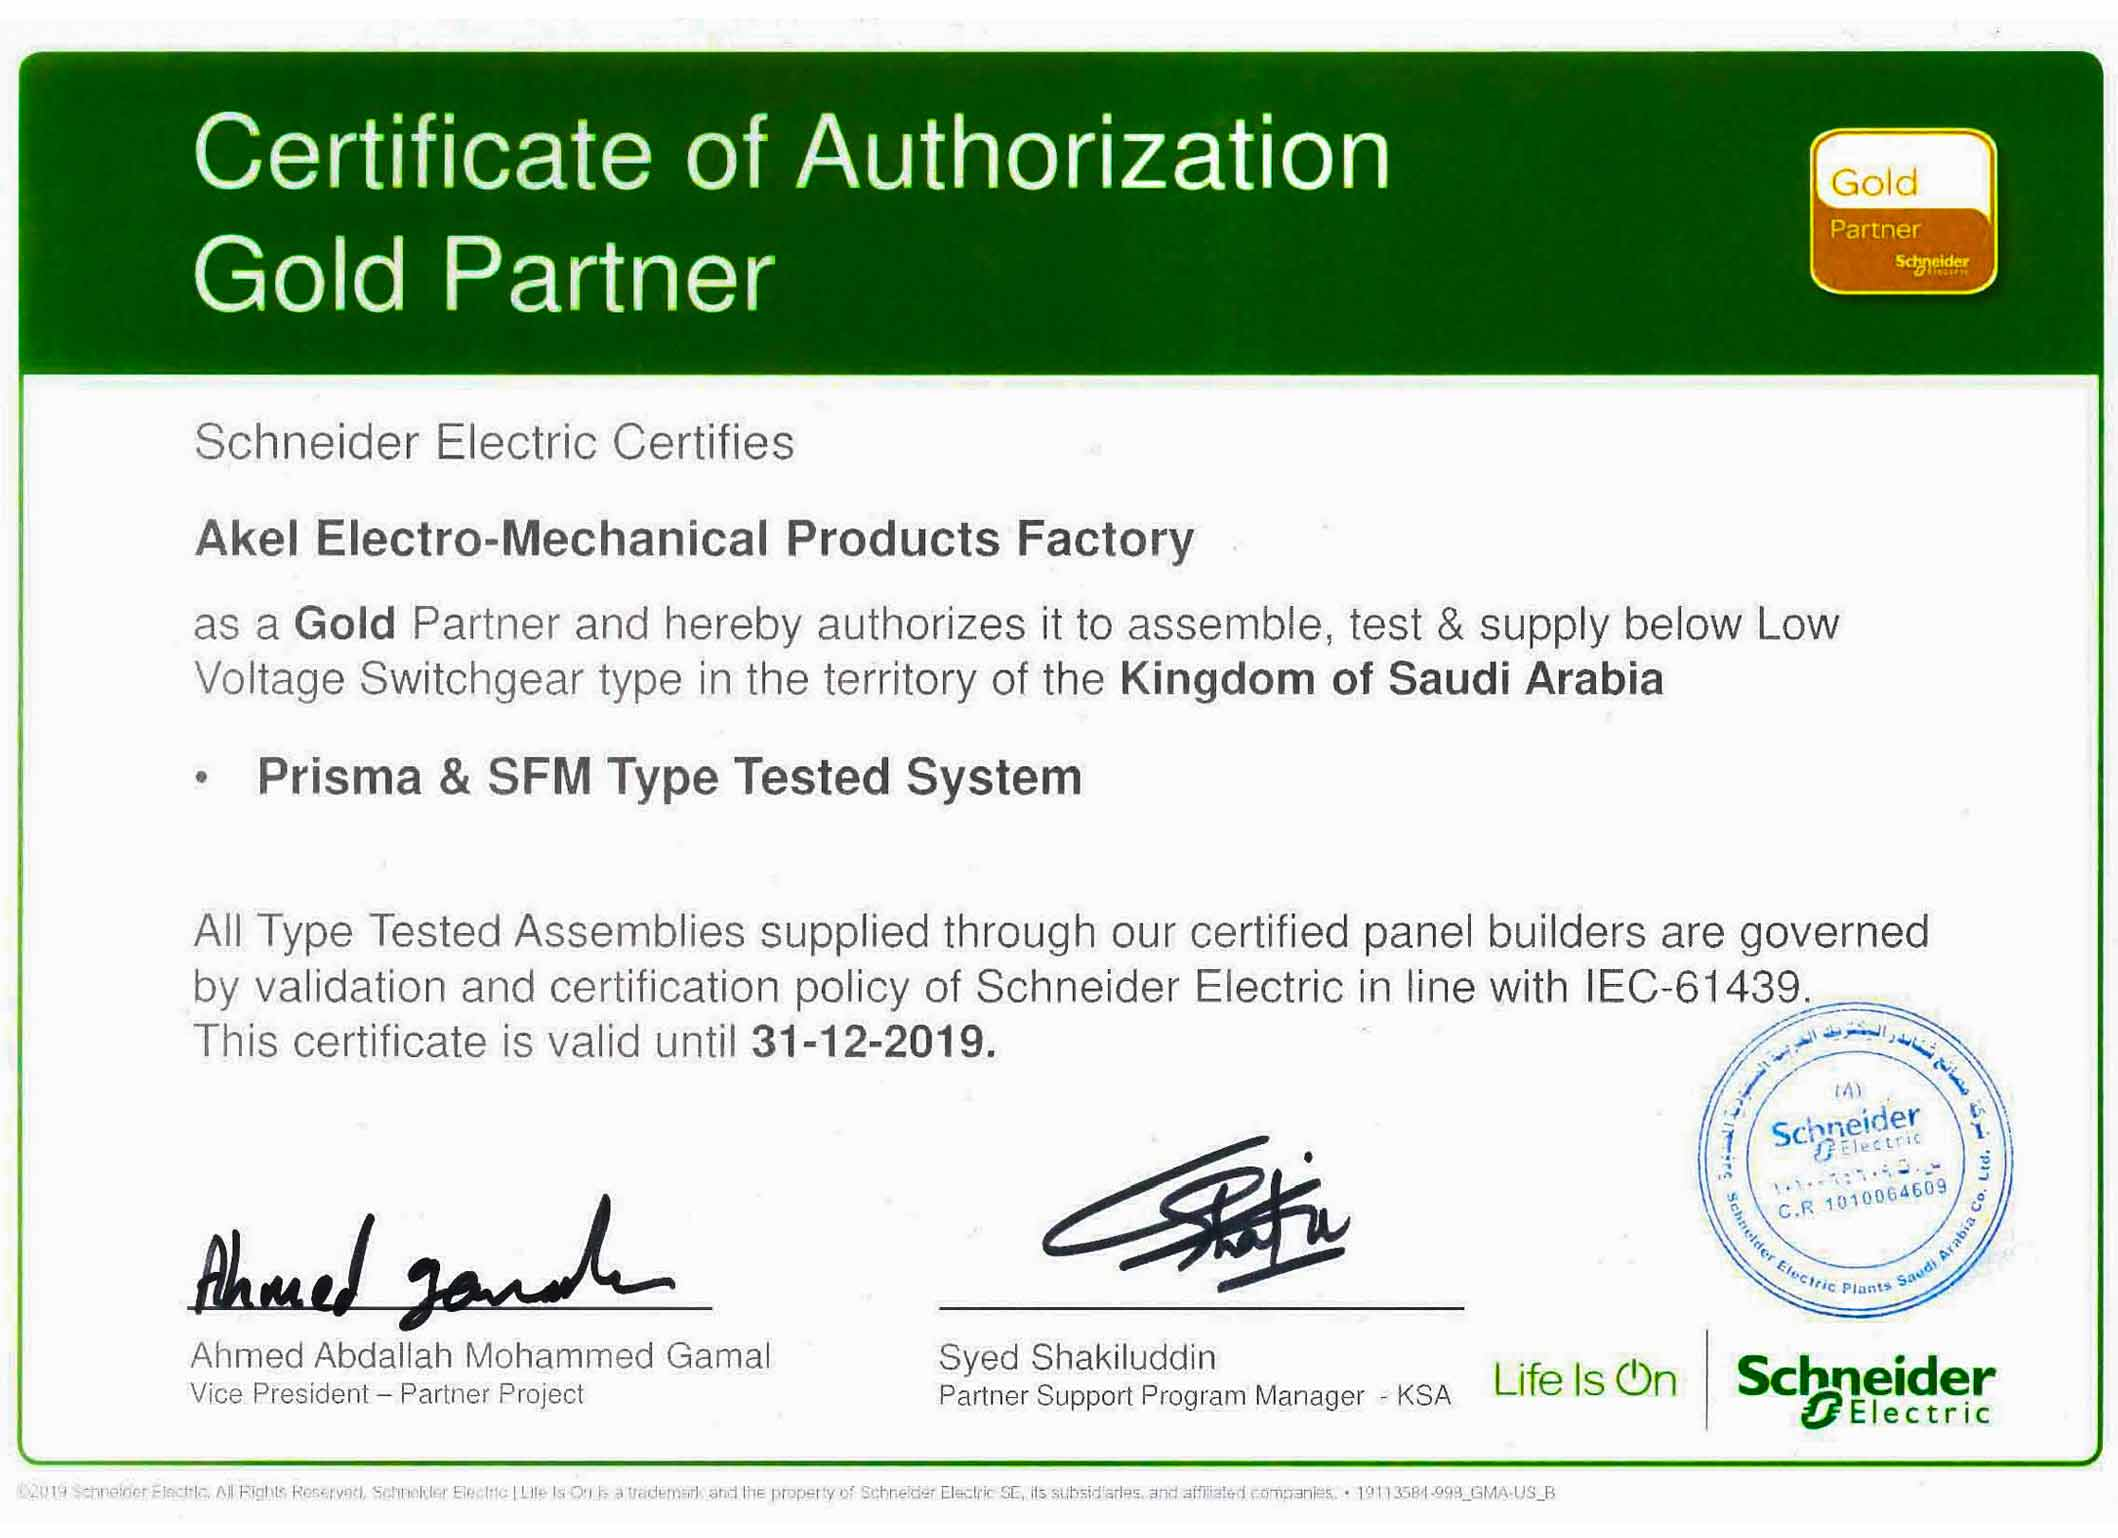 Certified Panel Builder by SCHNEIDER ELECTRIC